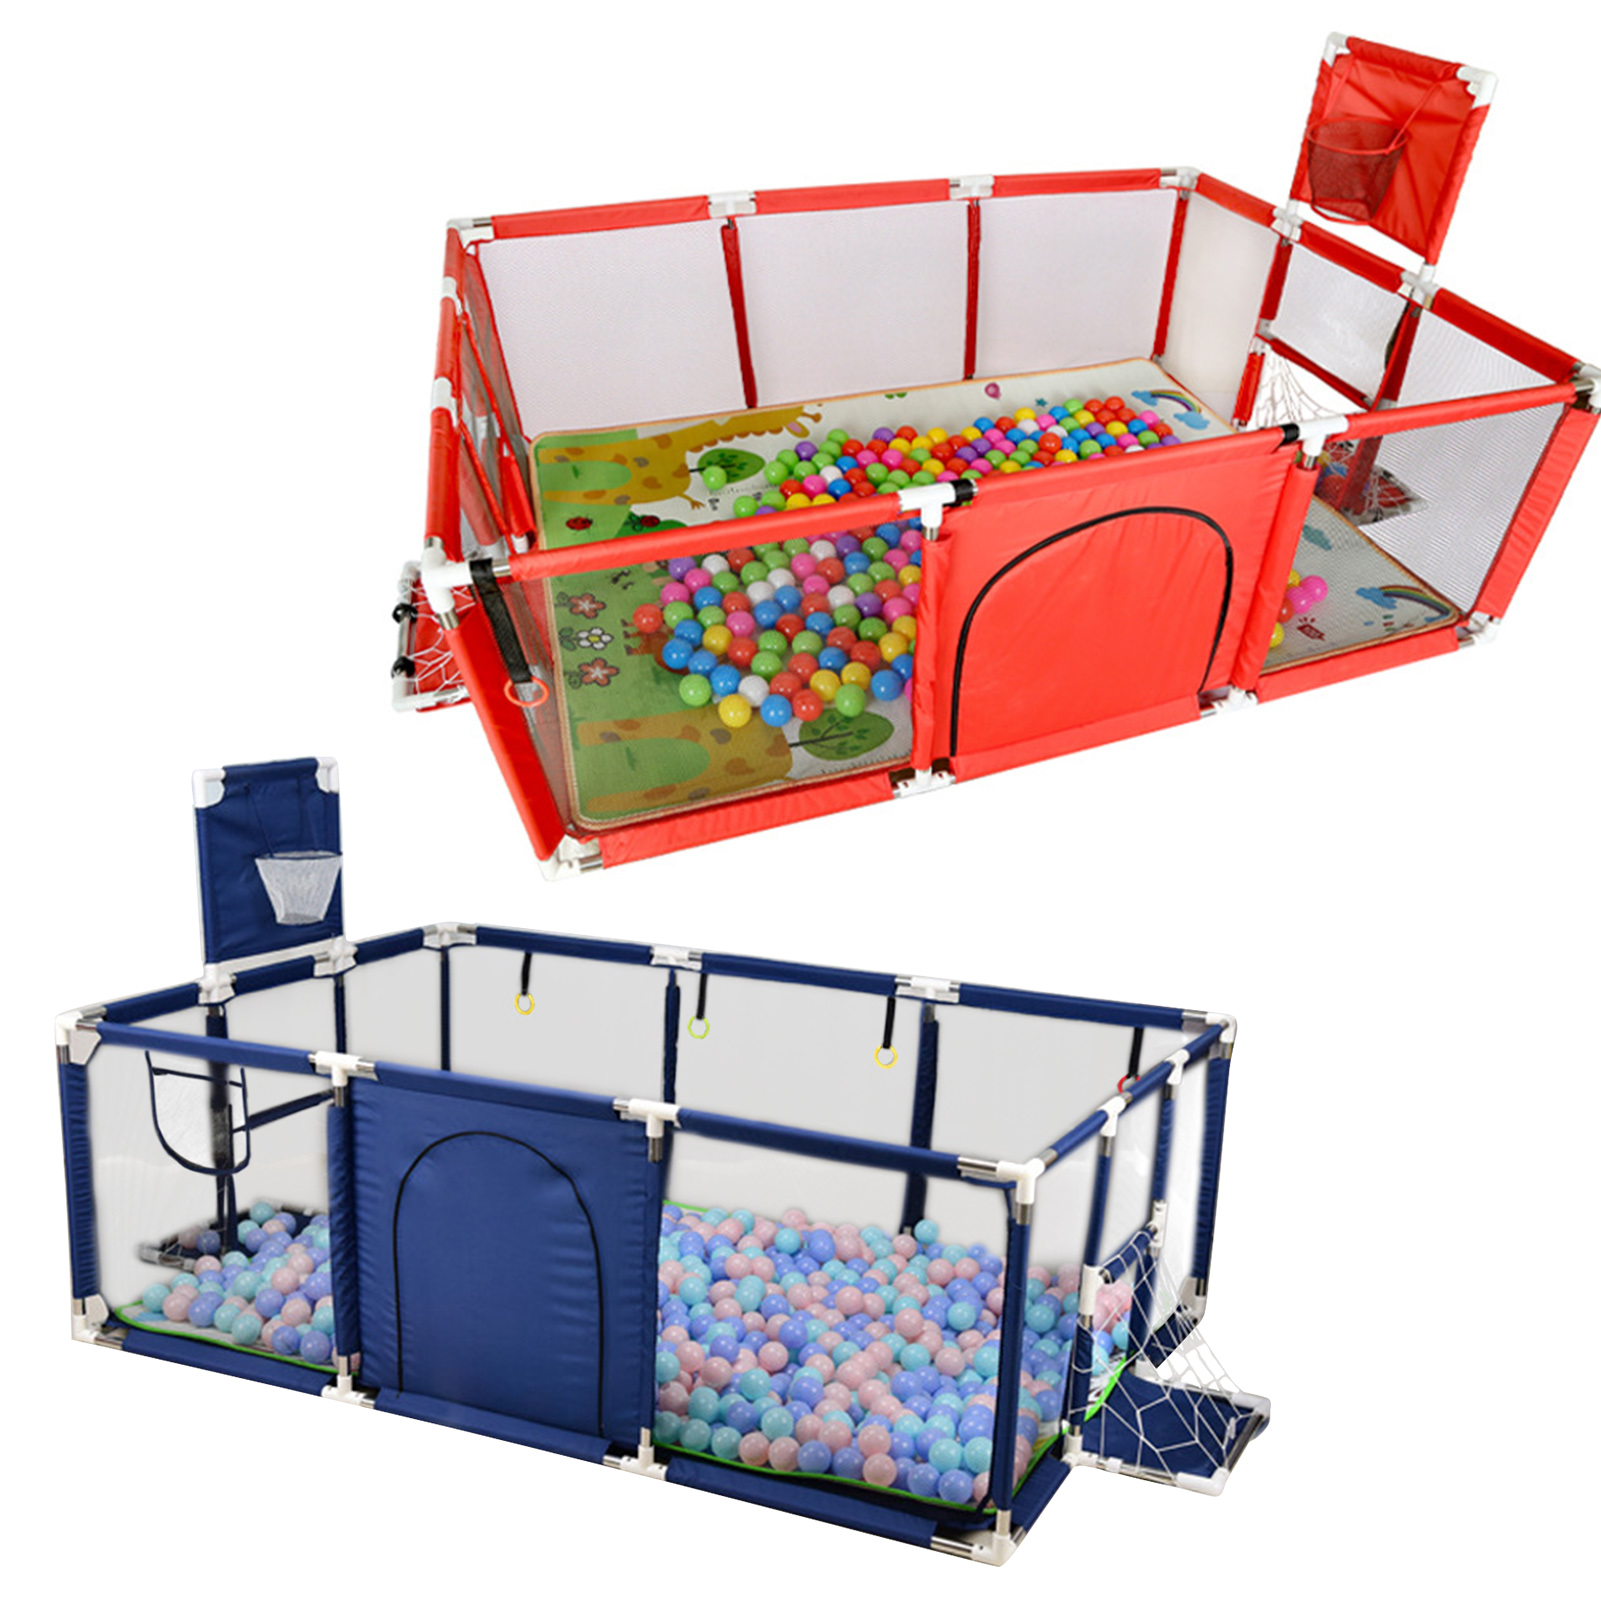 Baby Playpen For Children Playpen For Baby Playground Arena For Children Baby Ball Pool Park Kids Safety Fence Activity Play Pen